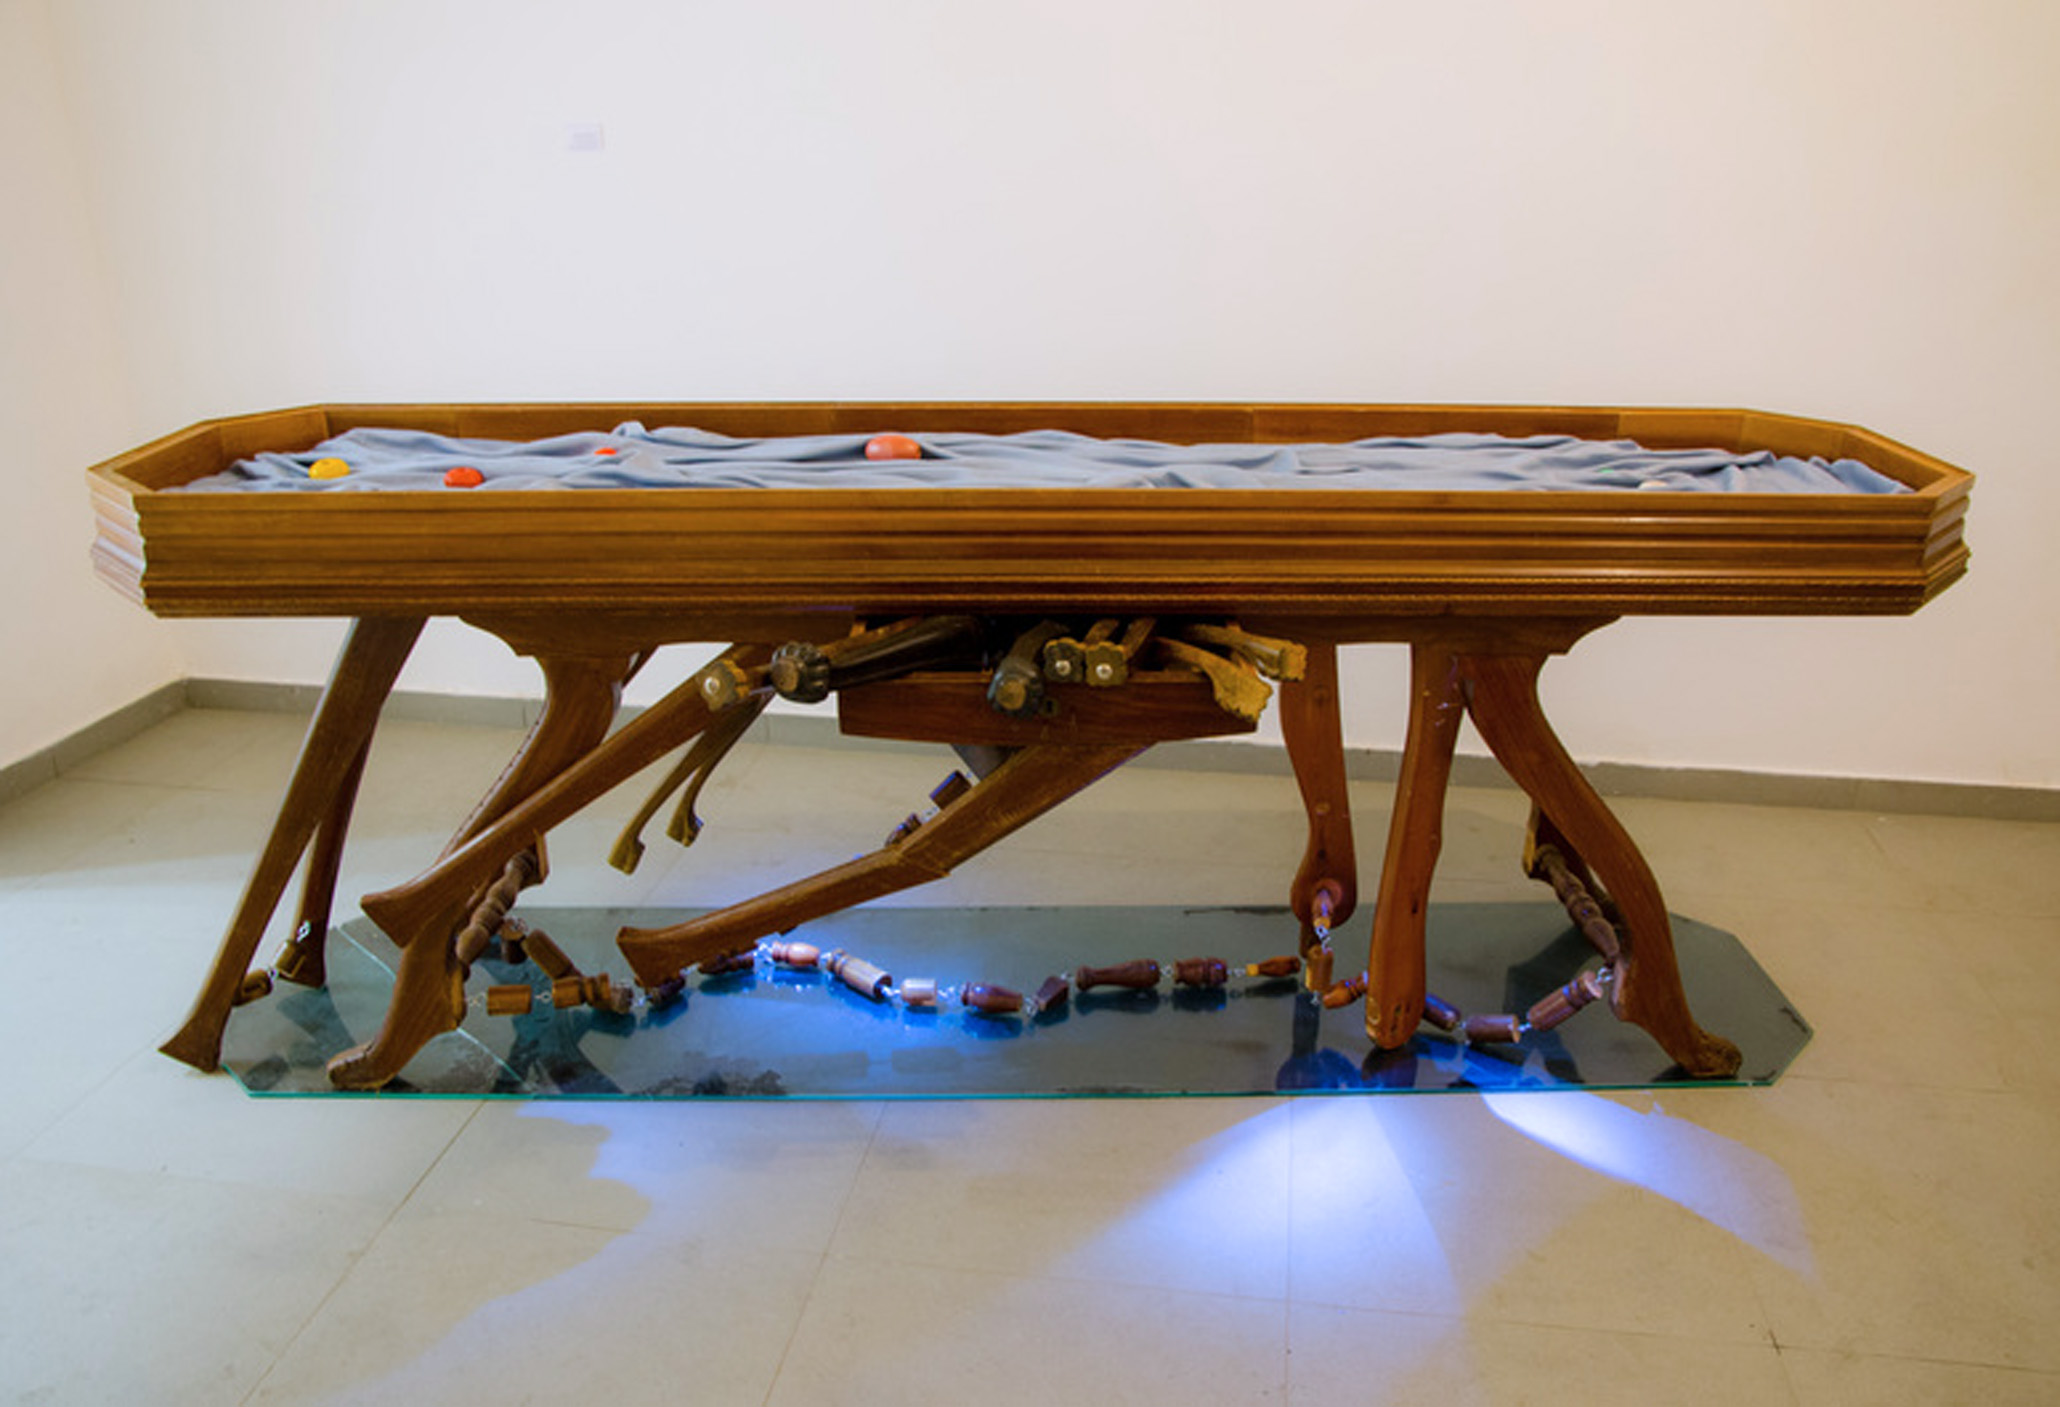 SCHLACHTEN | Performed Furniture | The Merchant's Vitrine Table, the Sea as a Locked Space of Trade | Image © Sonia Barrett